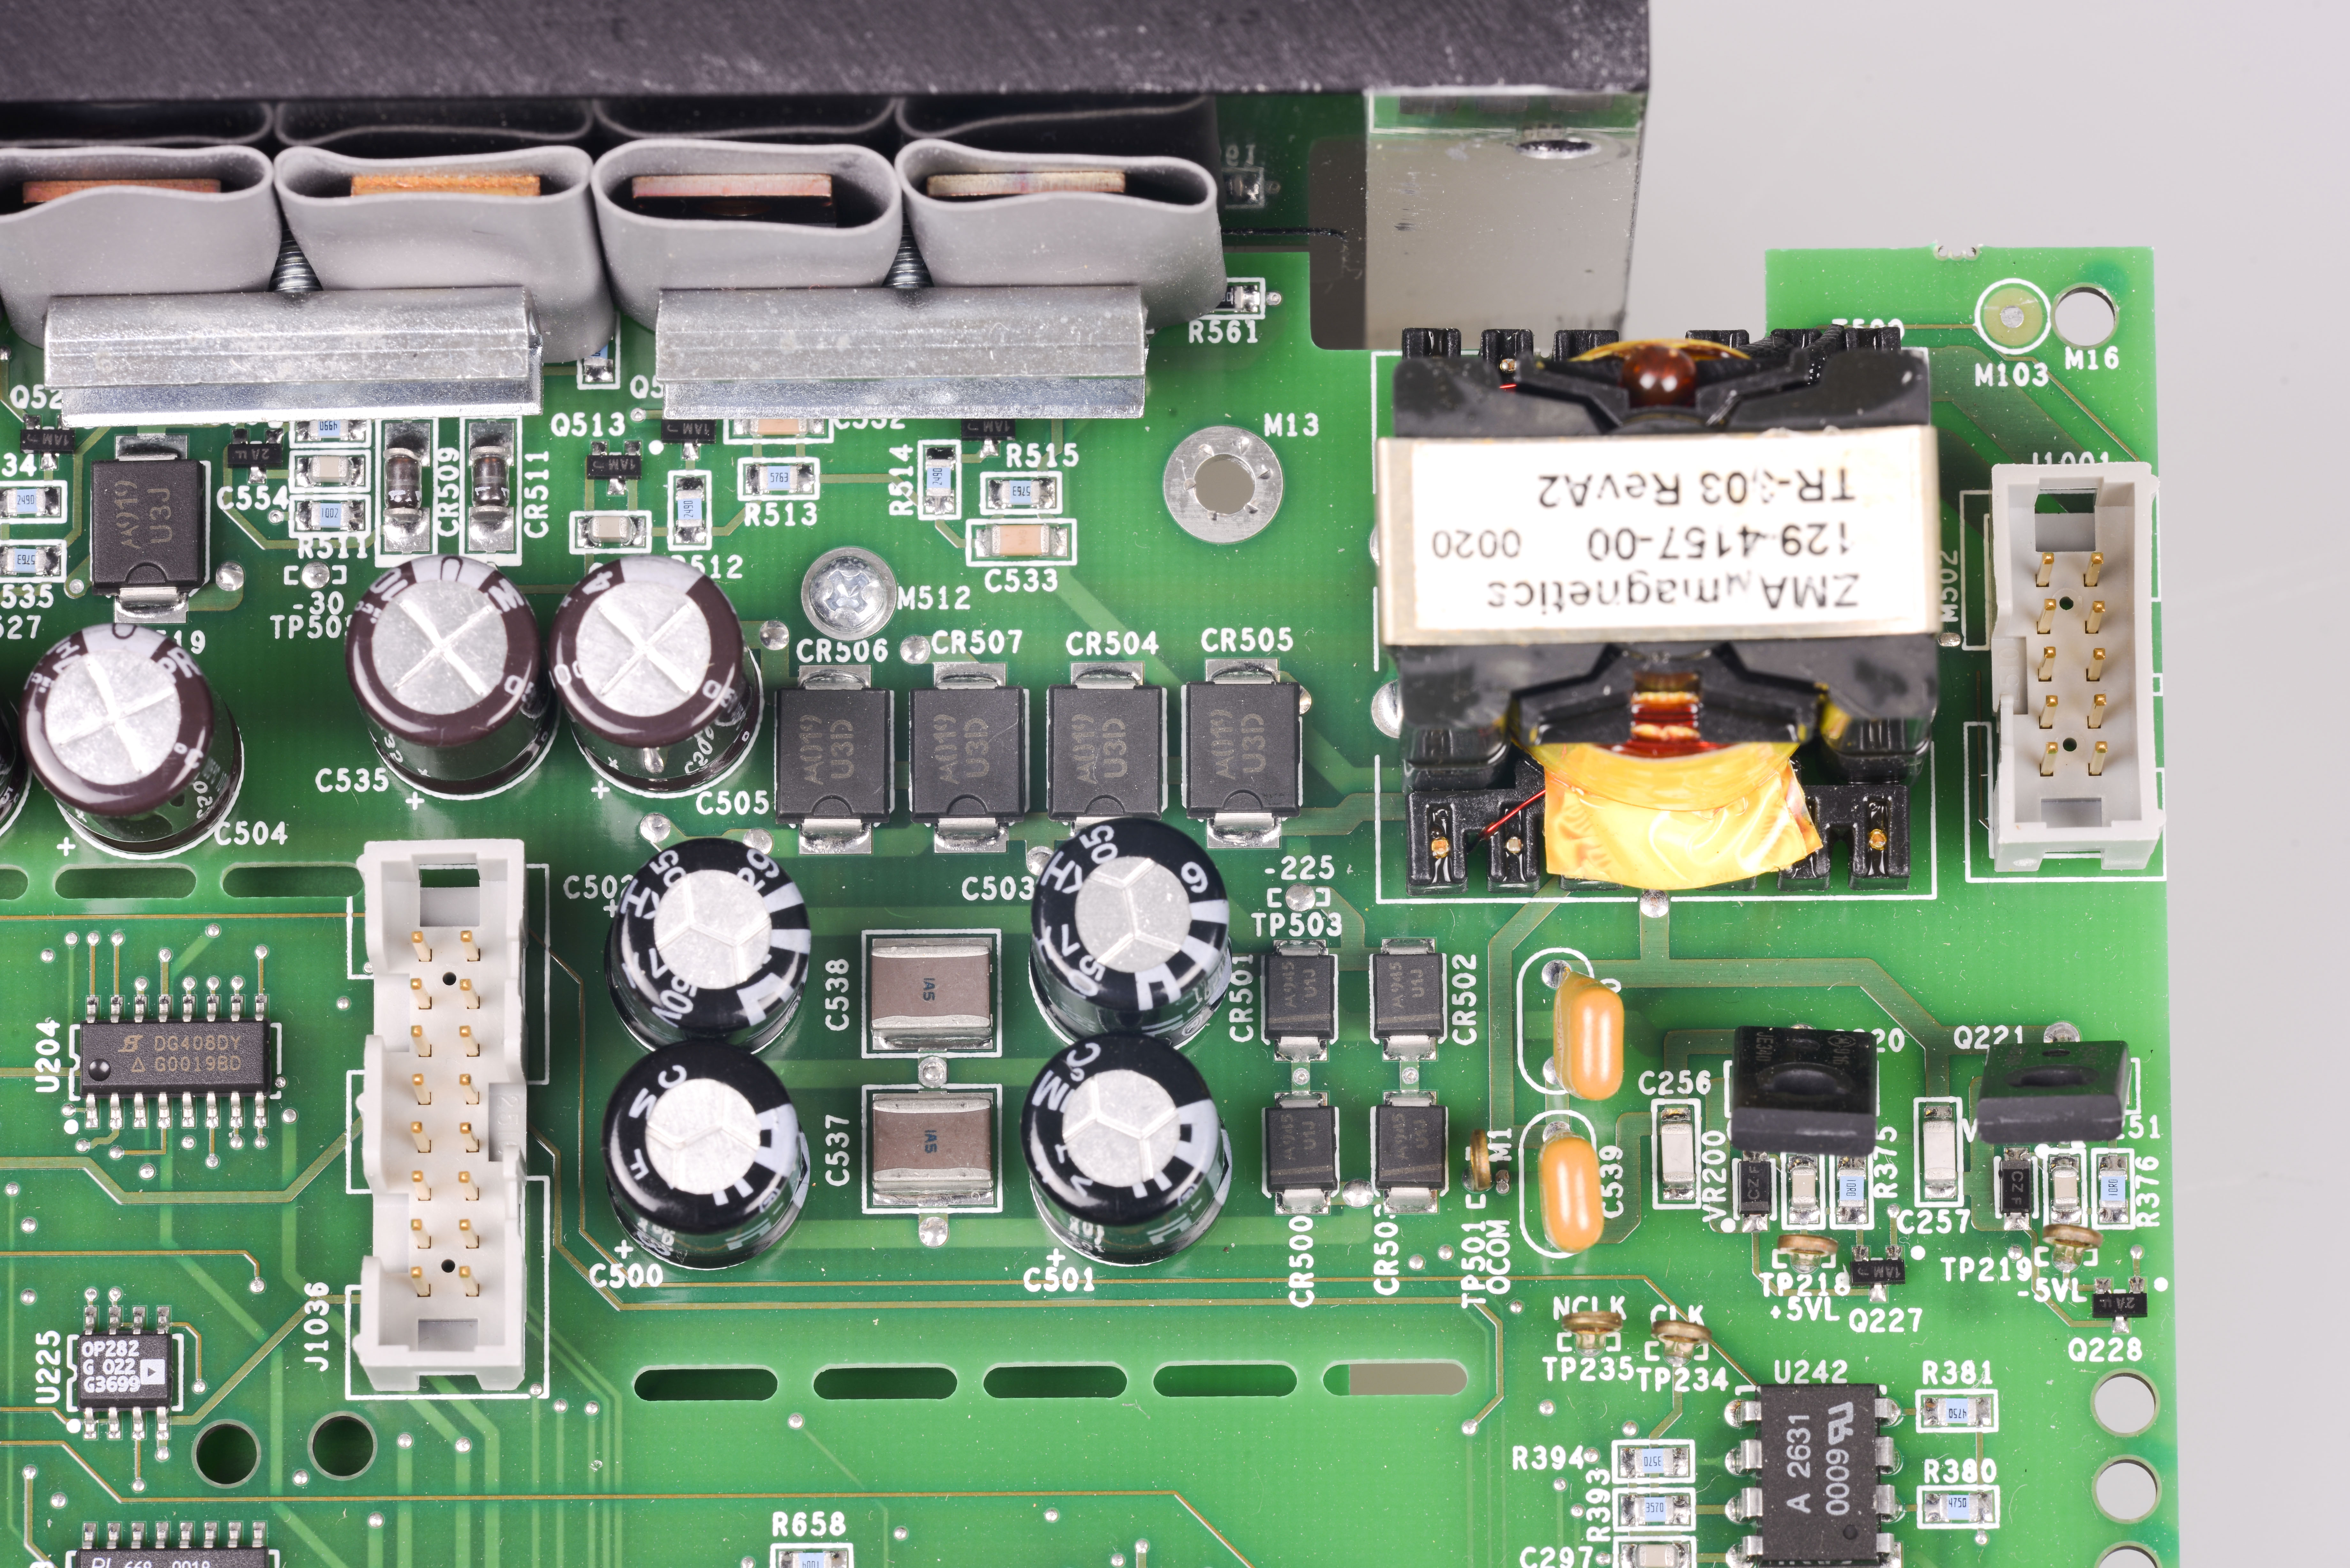 xdevs com keithley model 2400 review and vfd repair rh xdevs com Used Keithley 2000 Keithley 2001